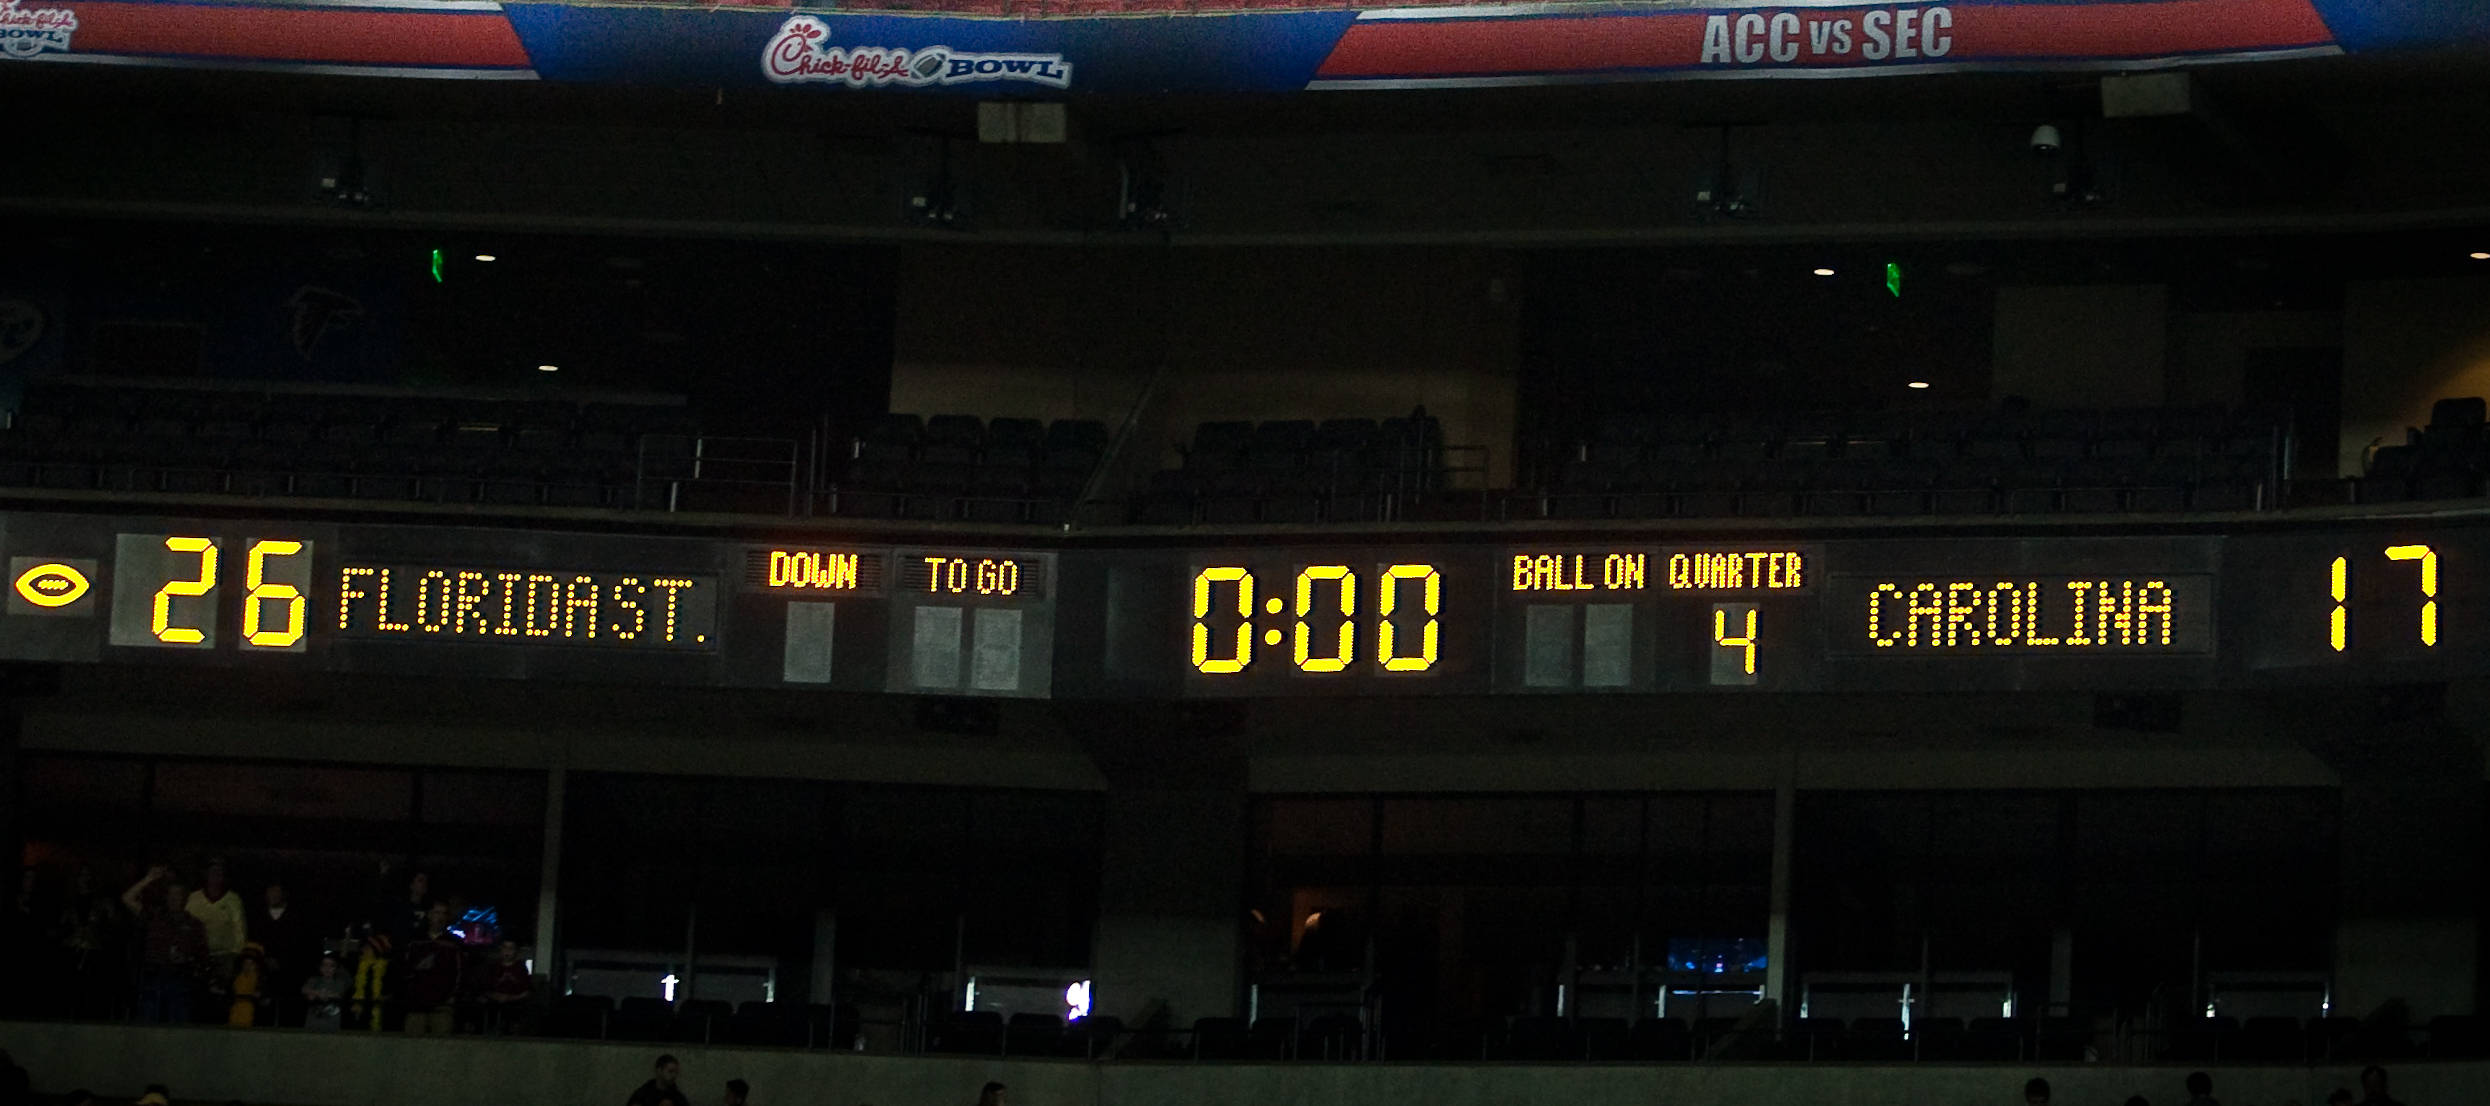 Final Score in the Georgia Dome